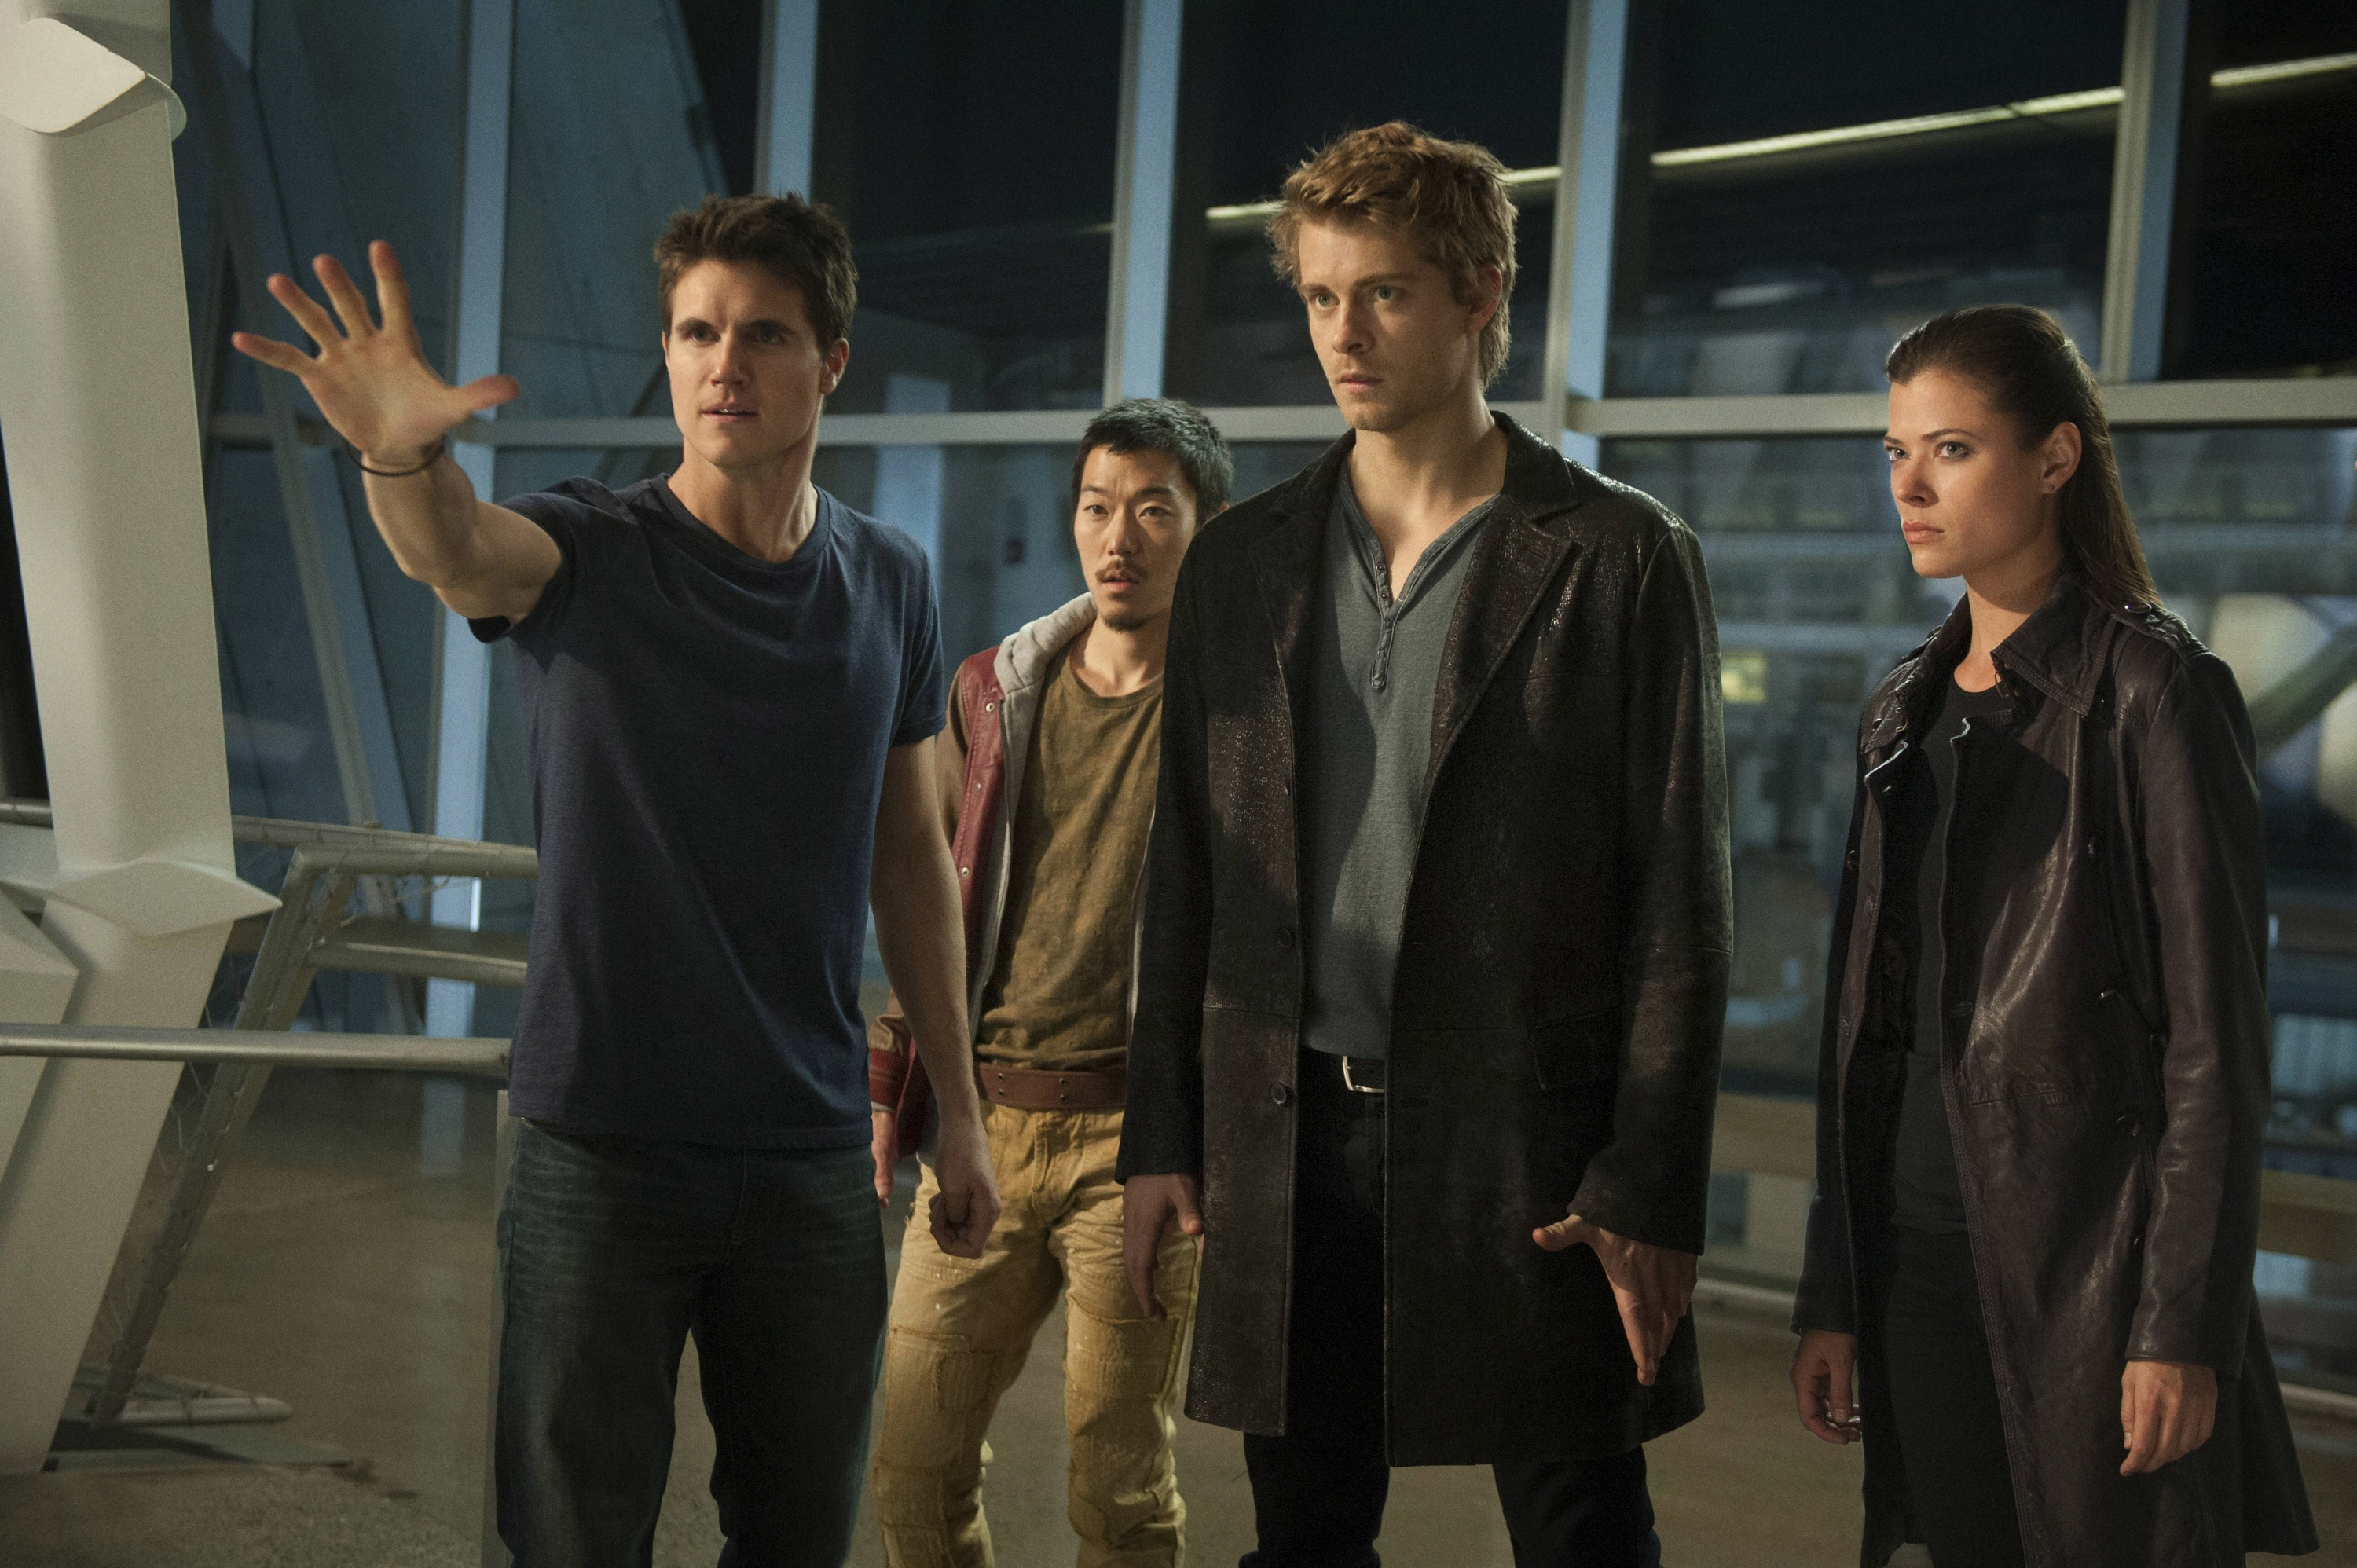 """From left, Robbie Amell as Stephen, Aaron Woo as Russell, Luke Mitchell as John and Peyton List as Cara in a scene from """"The Tomorrow People,"""" premiering at 9 tonight ."""